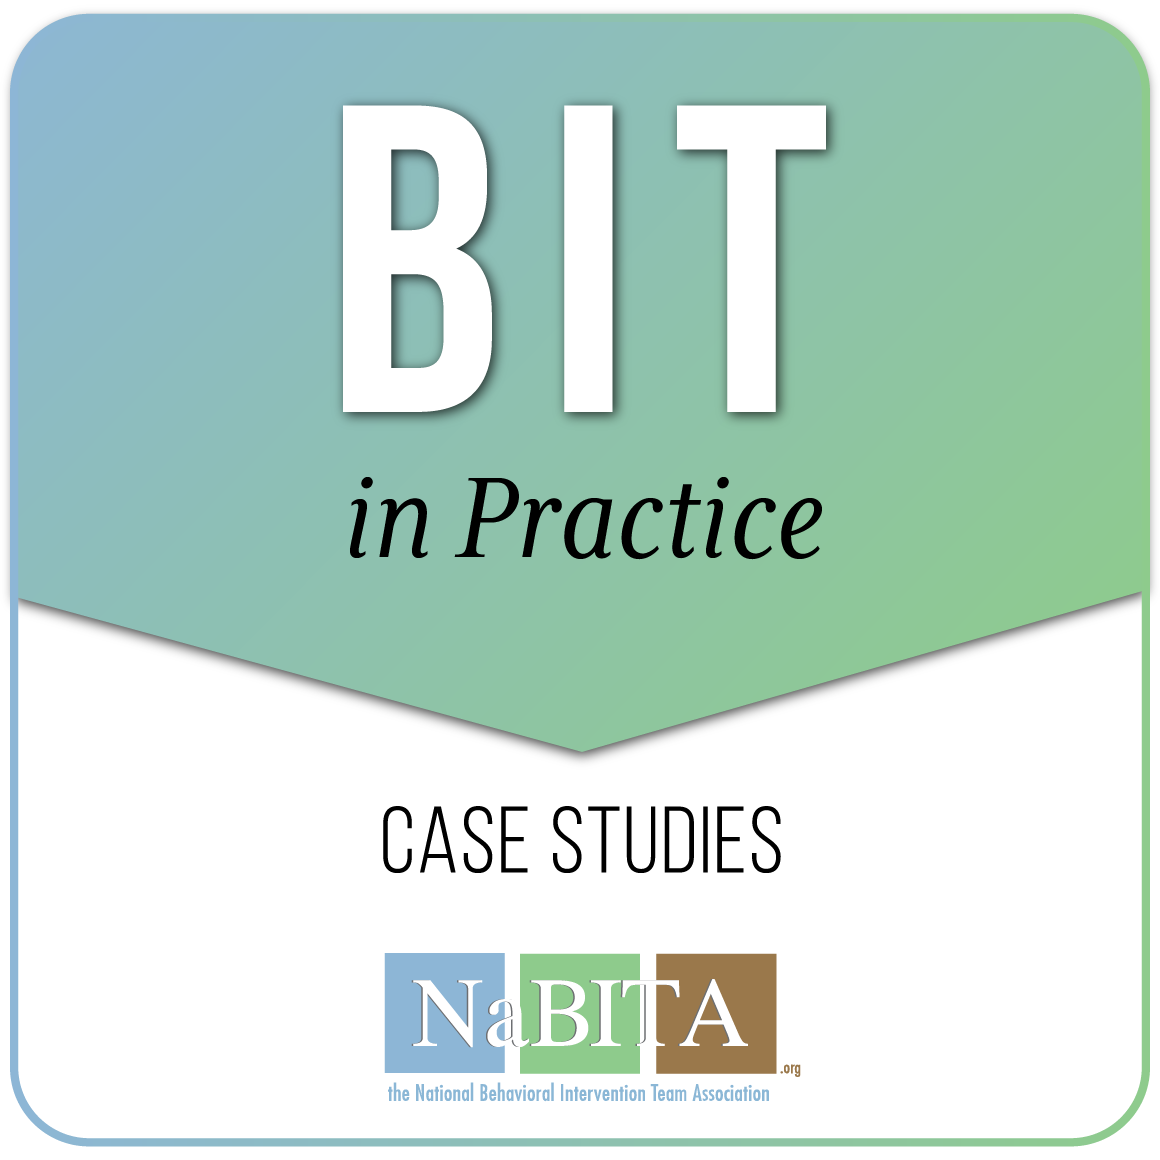 BIT in Practice - Case Studies